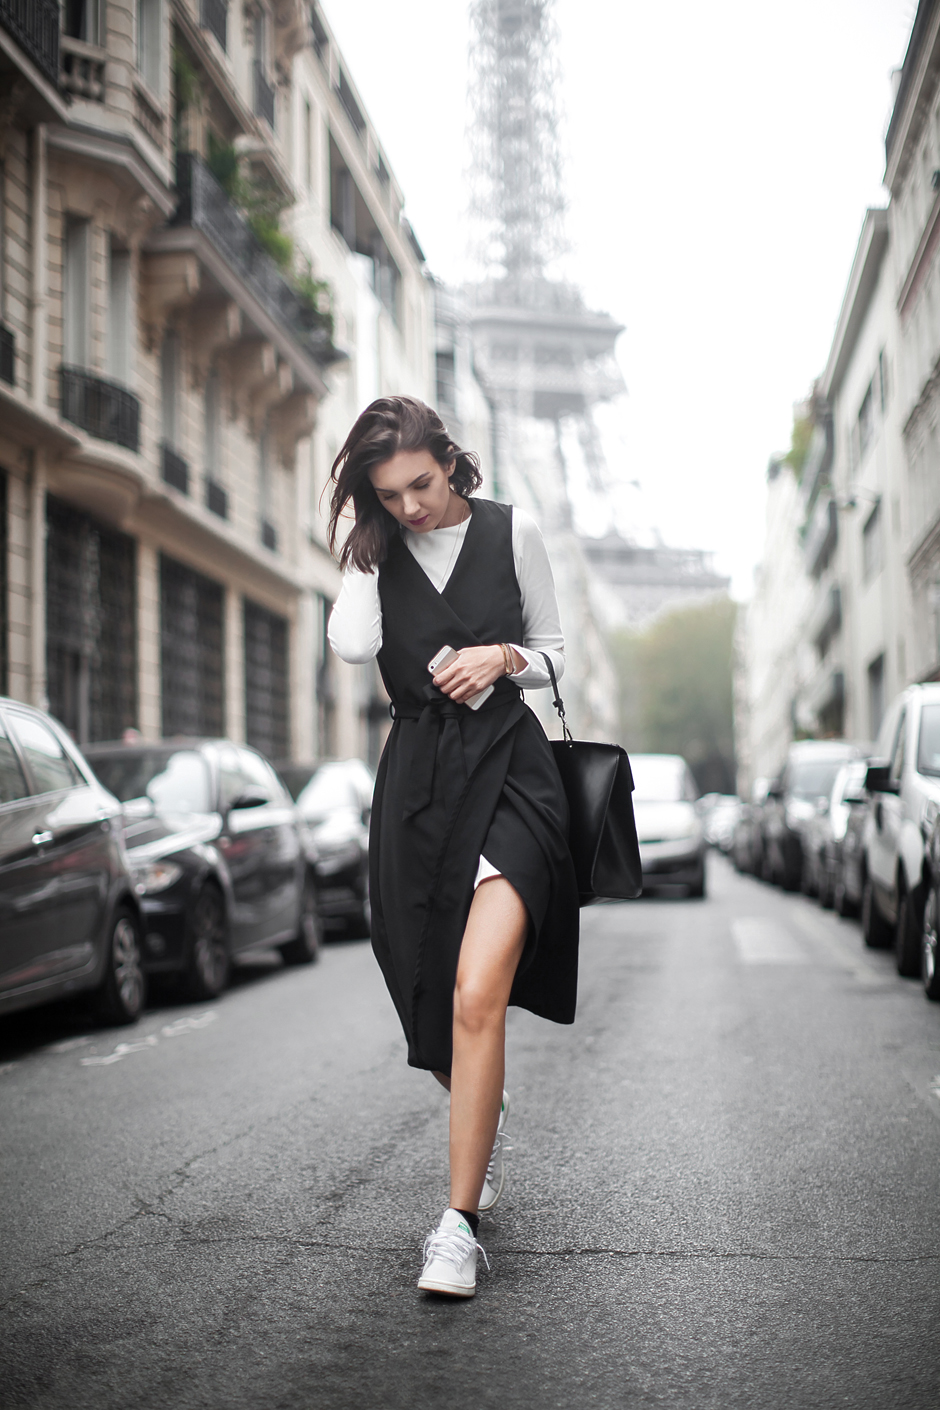 paris-fashion-blogger-eiffel-tower-look